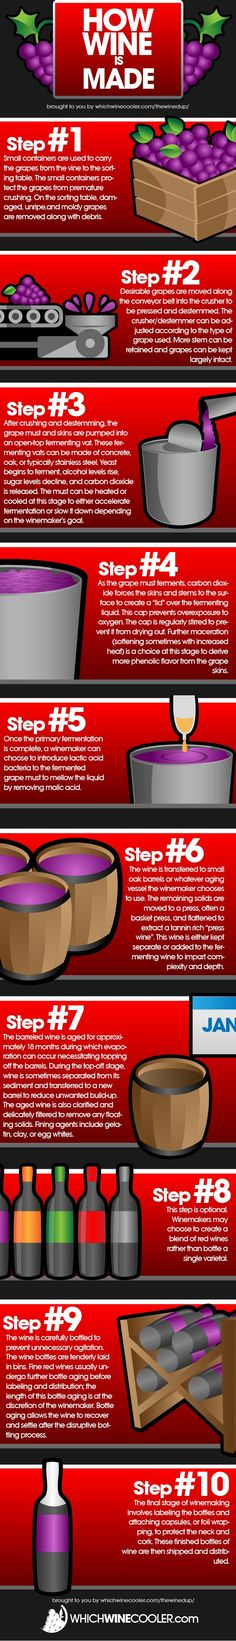 """""""How Wine is made"""" Apr-2012 from www.whichwinecooler.com/thewinedup/2012/04/13/how-wine-is-made/ - Infographic"""